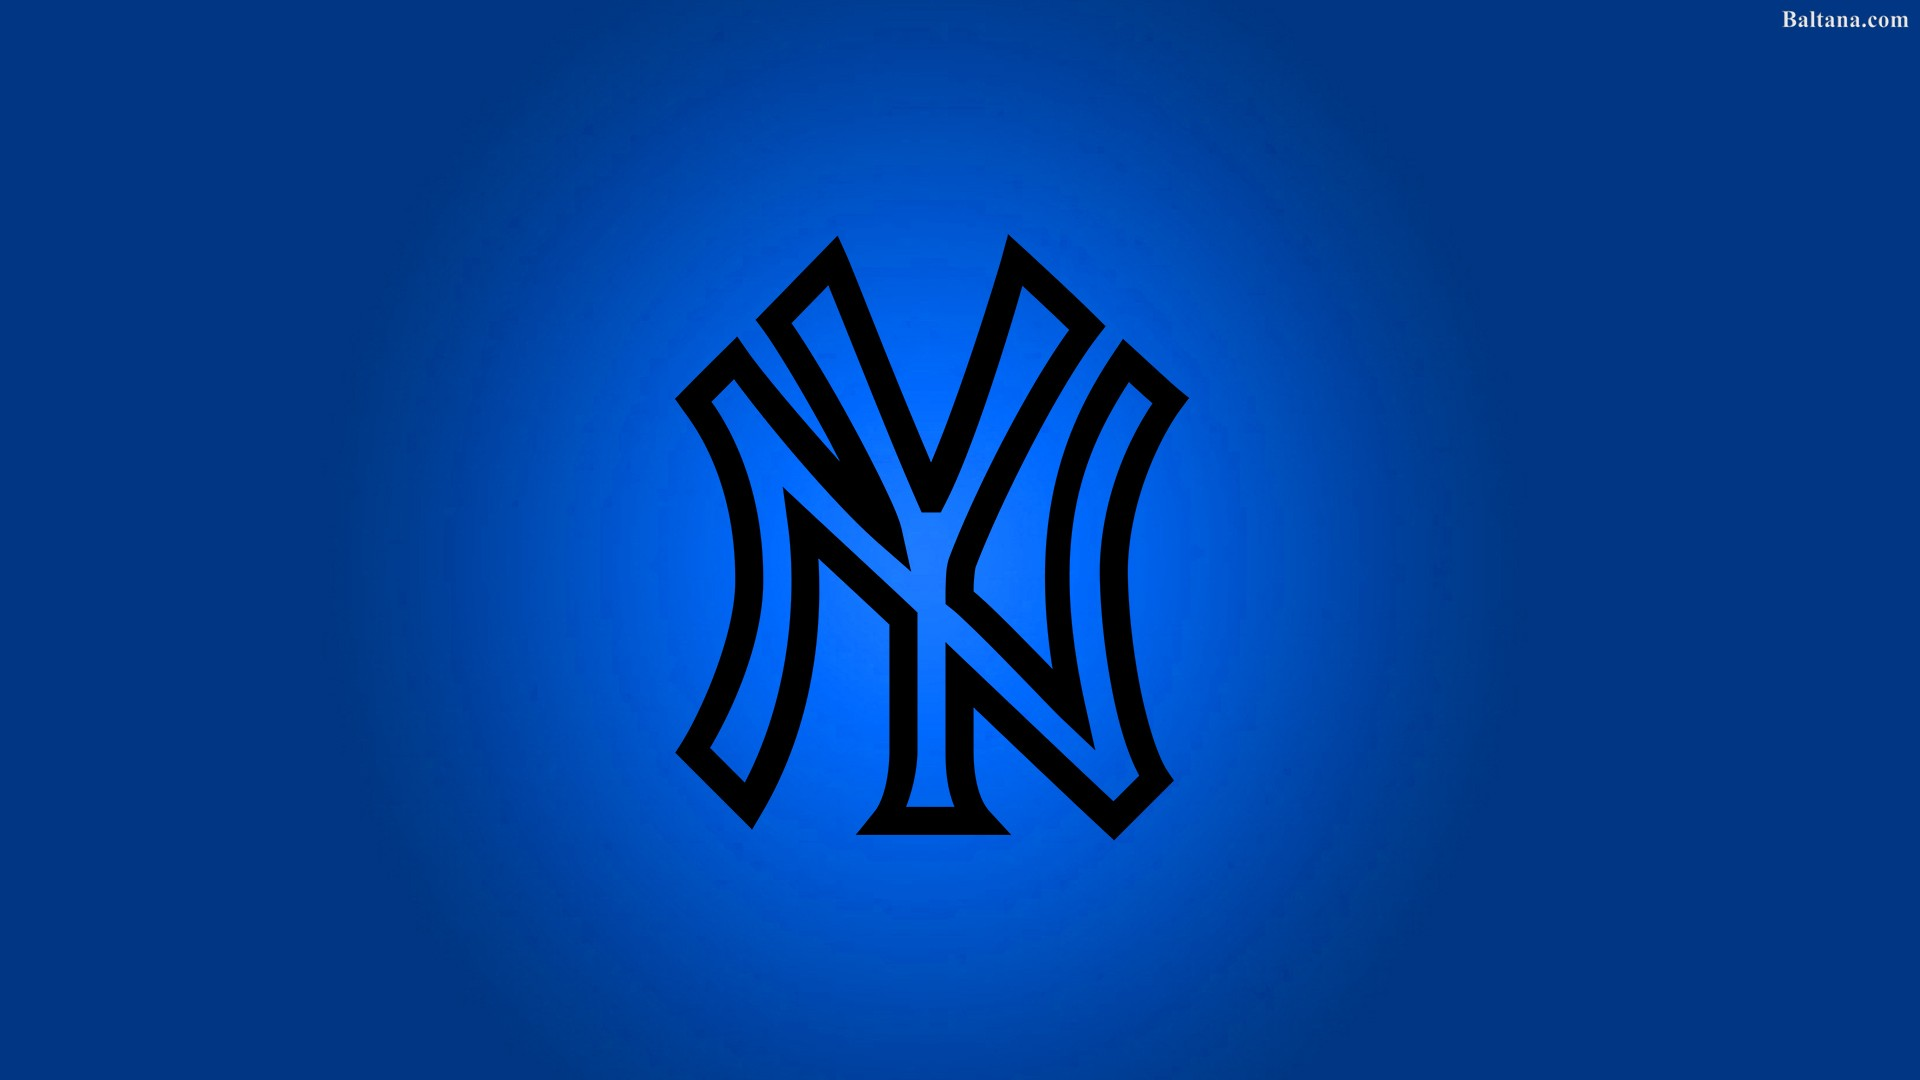 New York Yankees Wallpapers Hd Backgrounds, Images, - New York Yankees Svg Free , HD Wallpaper & Backgrounds